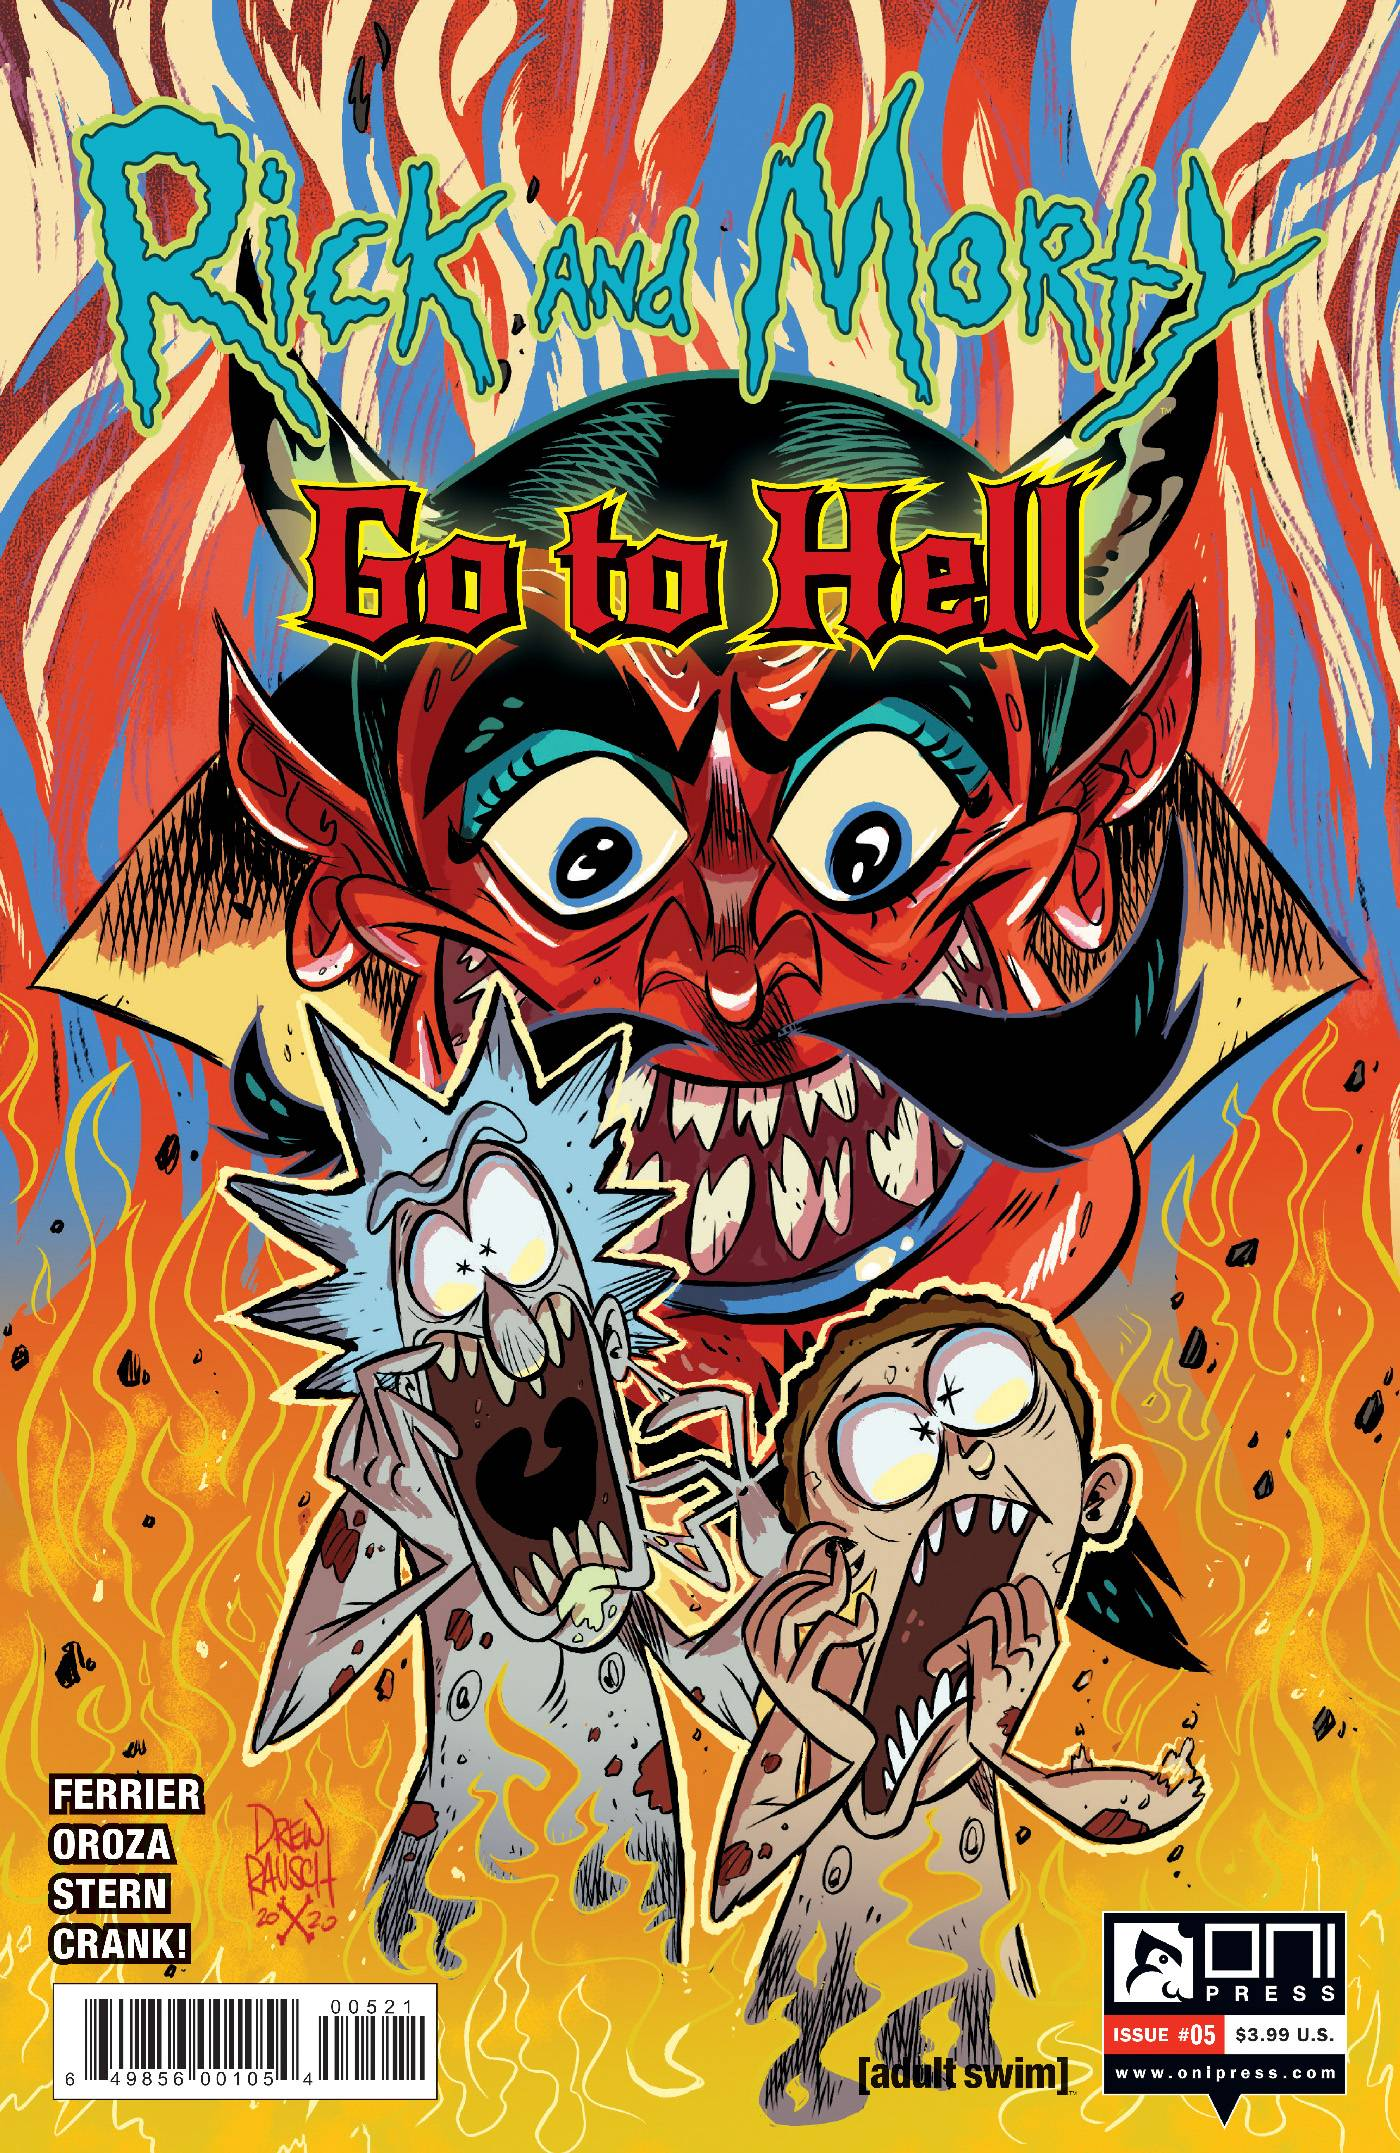 RICK AND MORTY GO TO HELL #5 CVR B